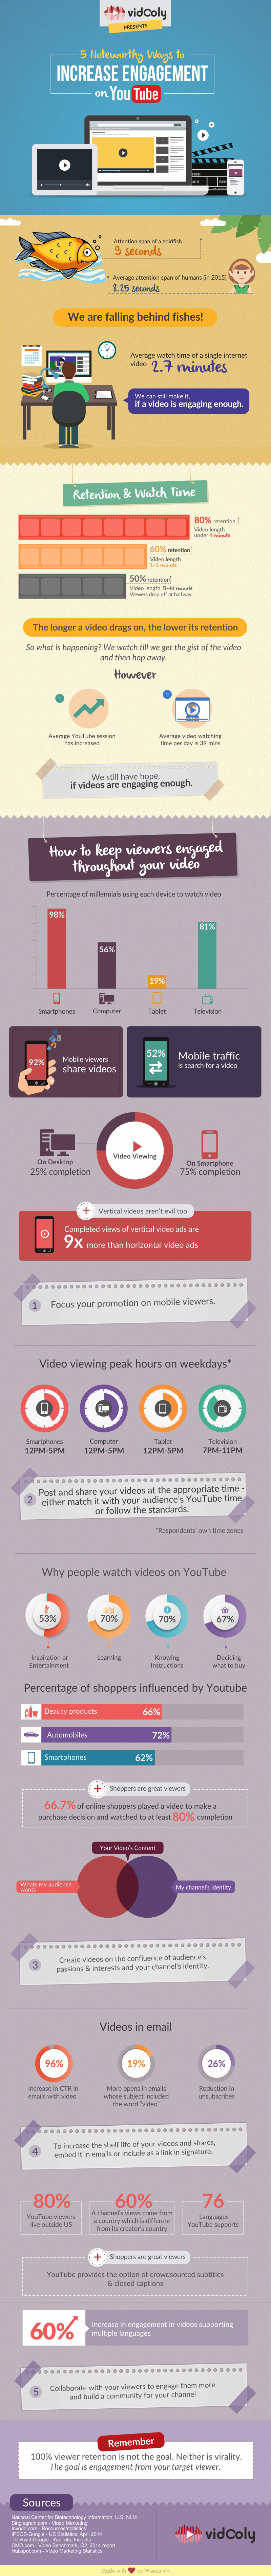 YouTube-engagement-infographic